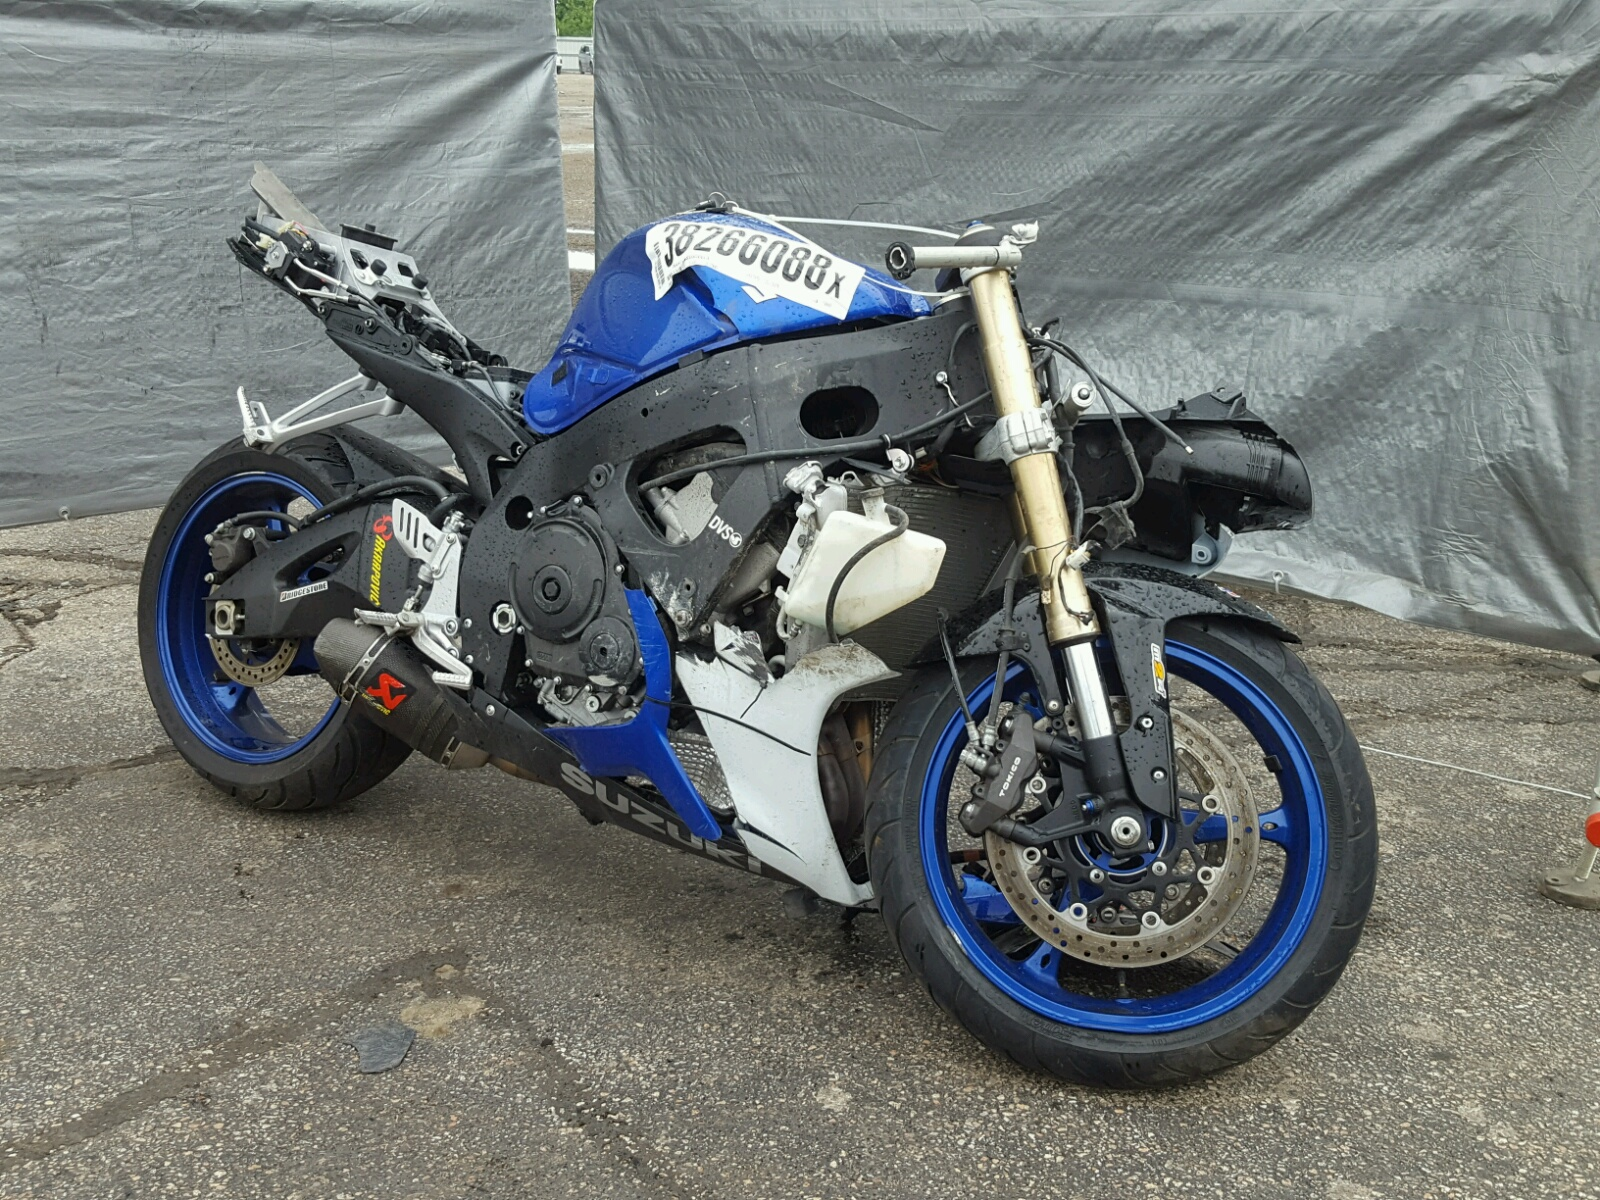 2007 Suzuki GSX-R600 for sale at Copart Elgin, IL Lot# 38266088